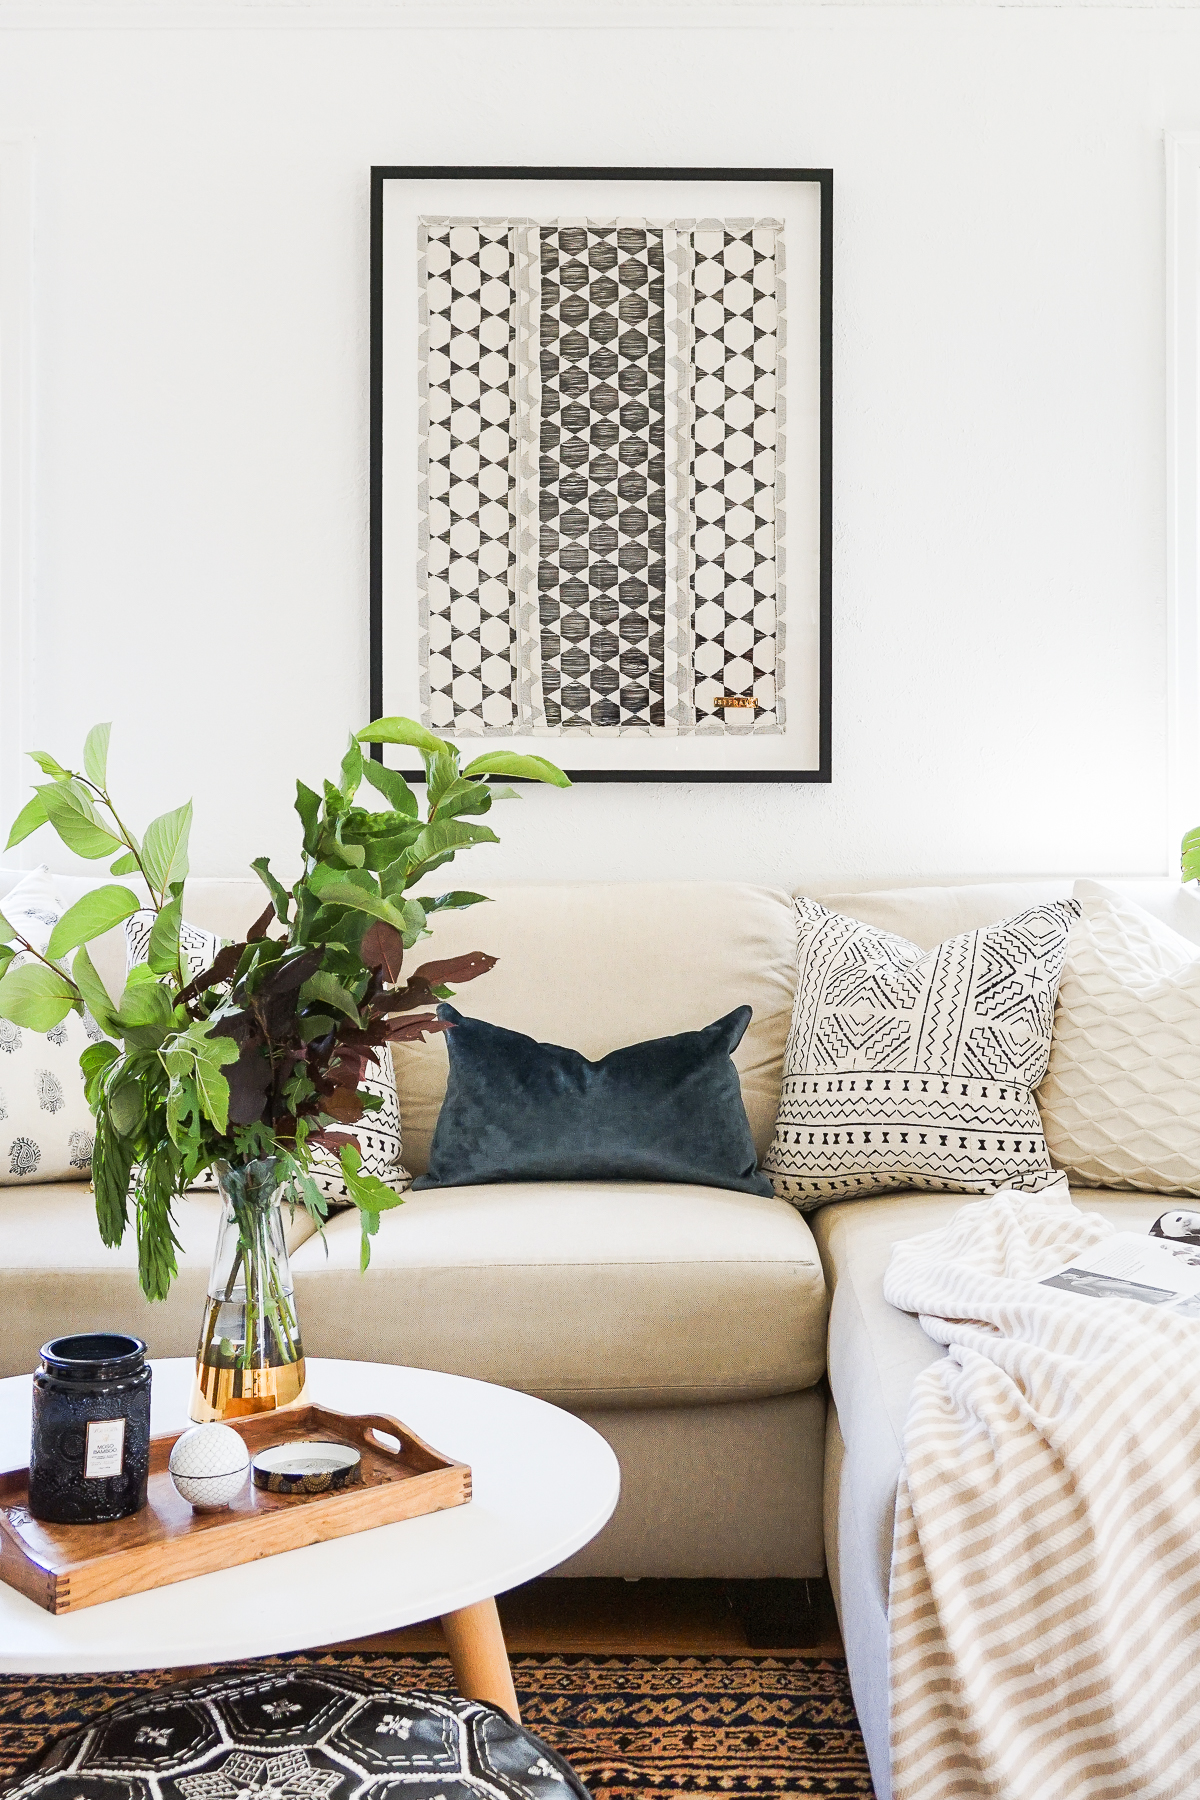 Mindful Design: Redefining Luxury With St. Frank Textiles